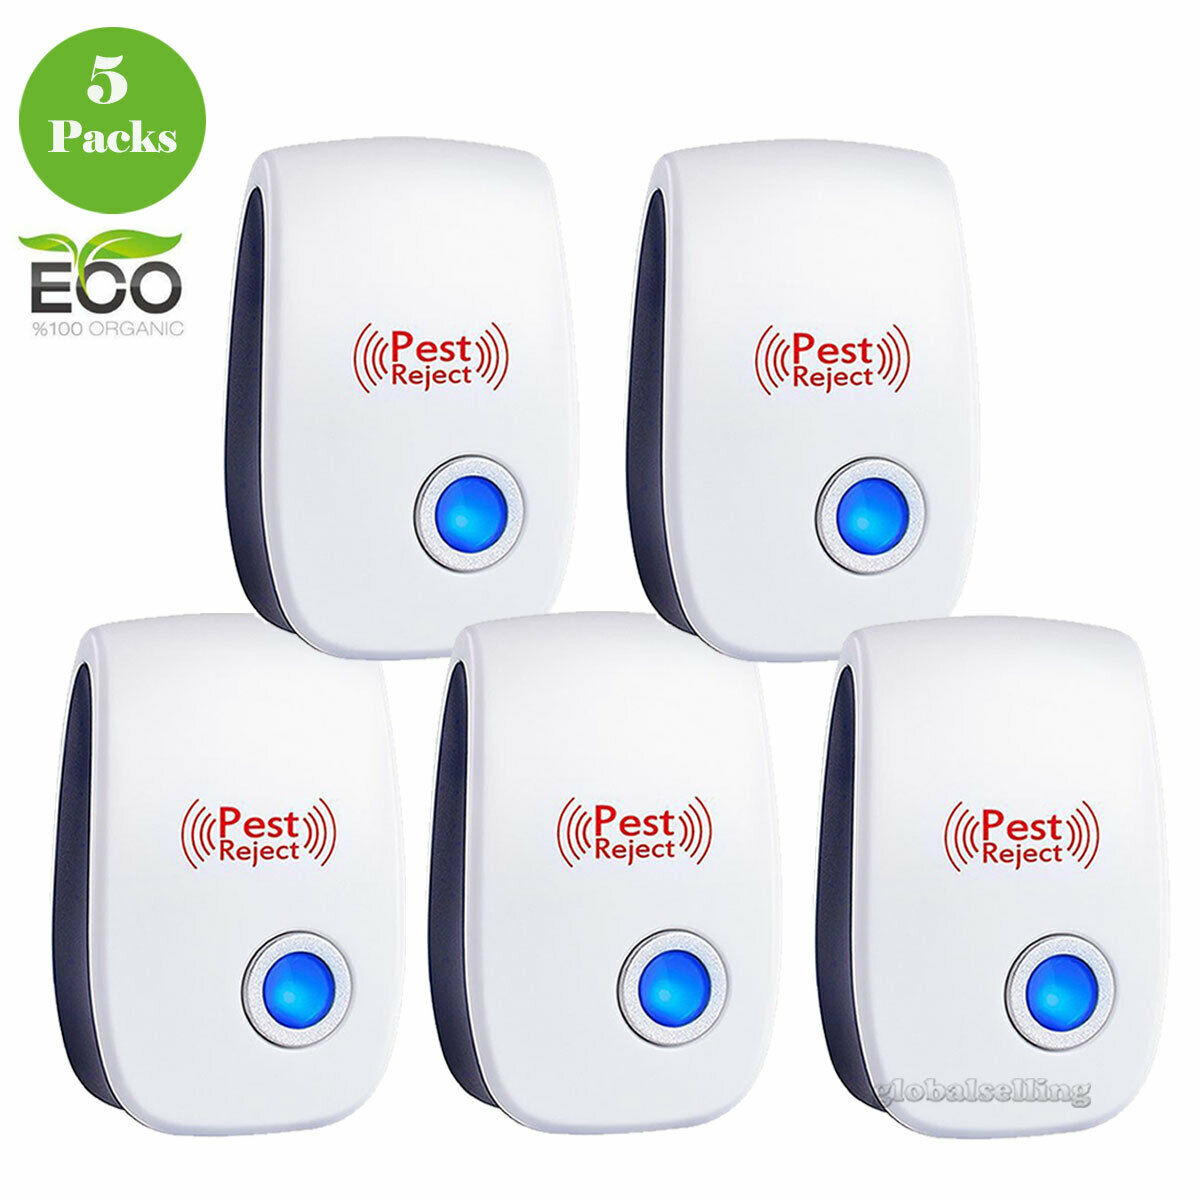 Ess Ultrasonic Pest Control Repeller Plug in Home Bed Bug Insect Mosquito 6 Pack